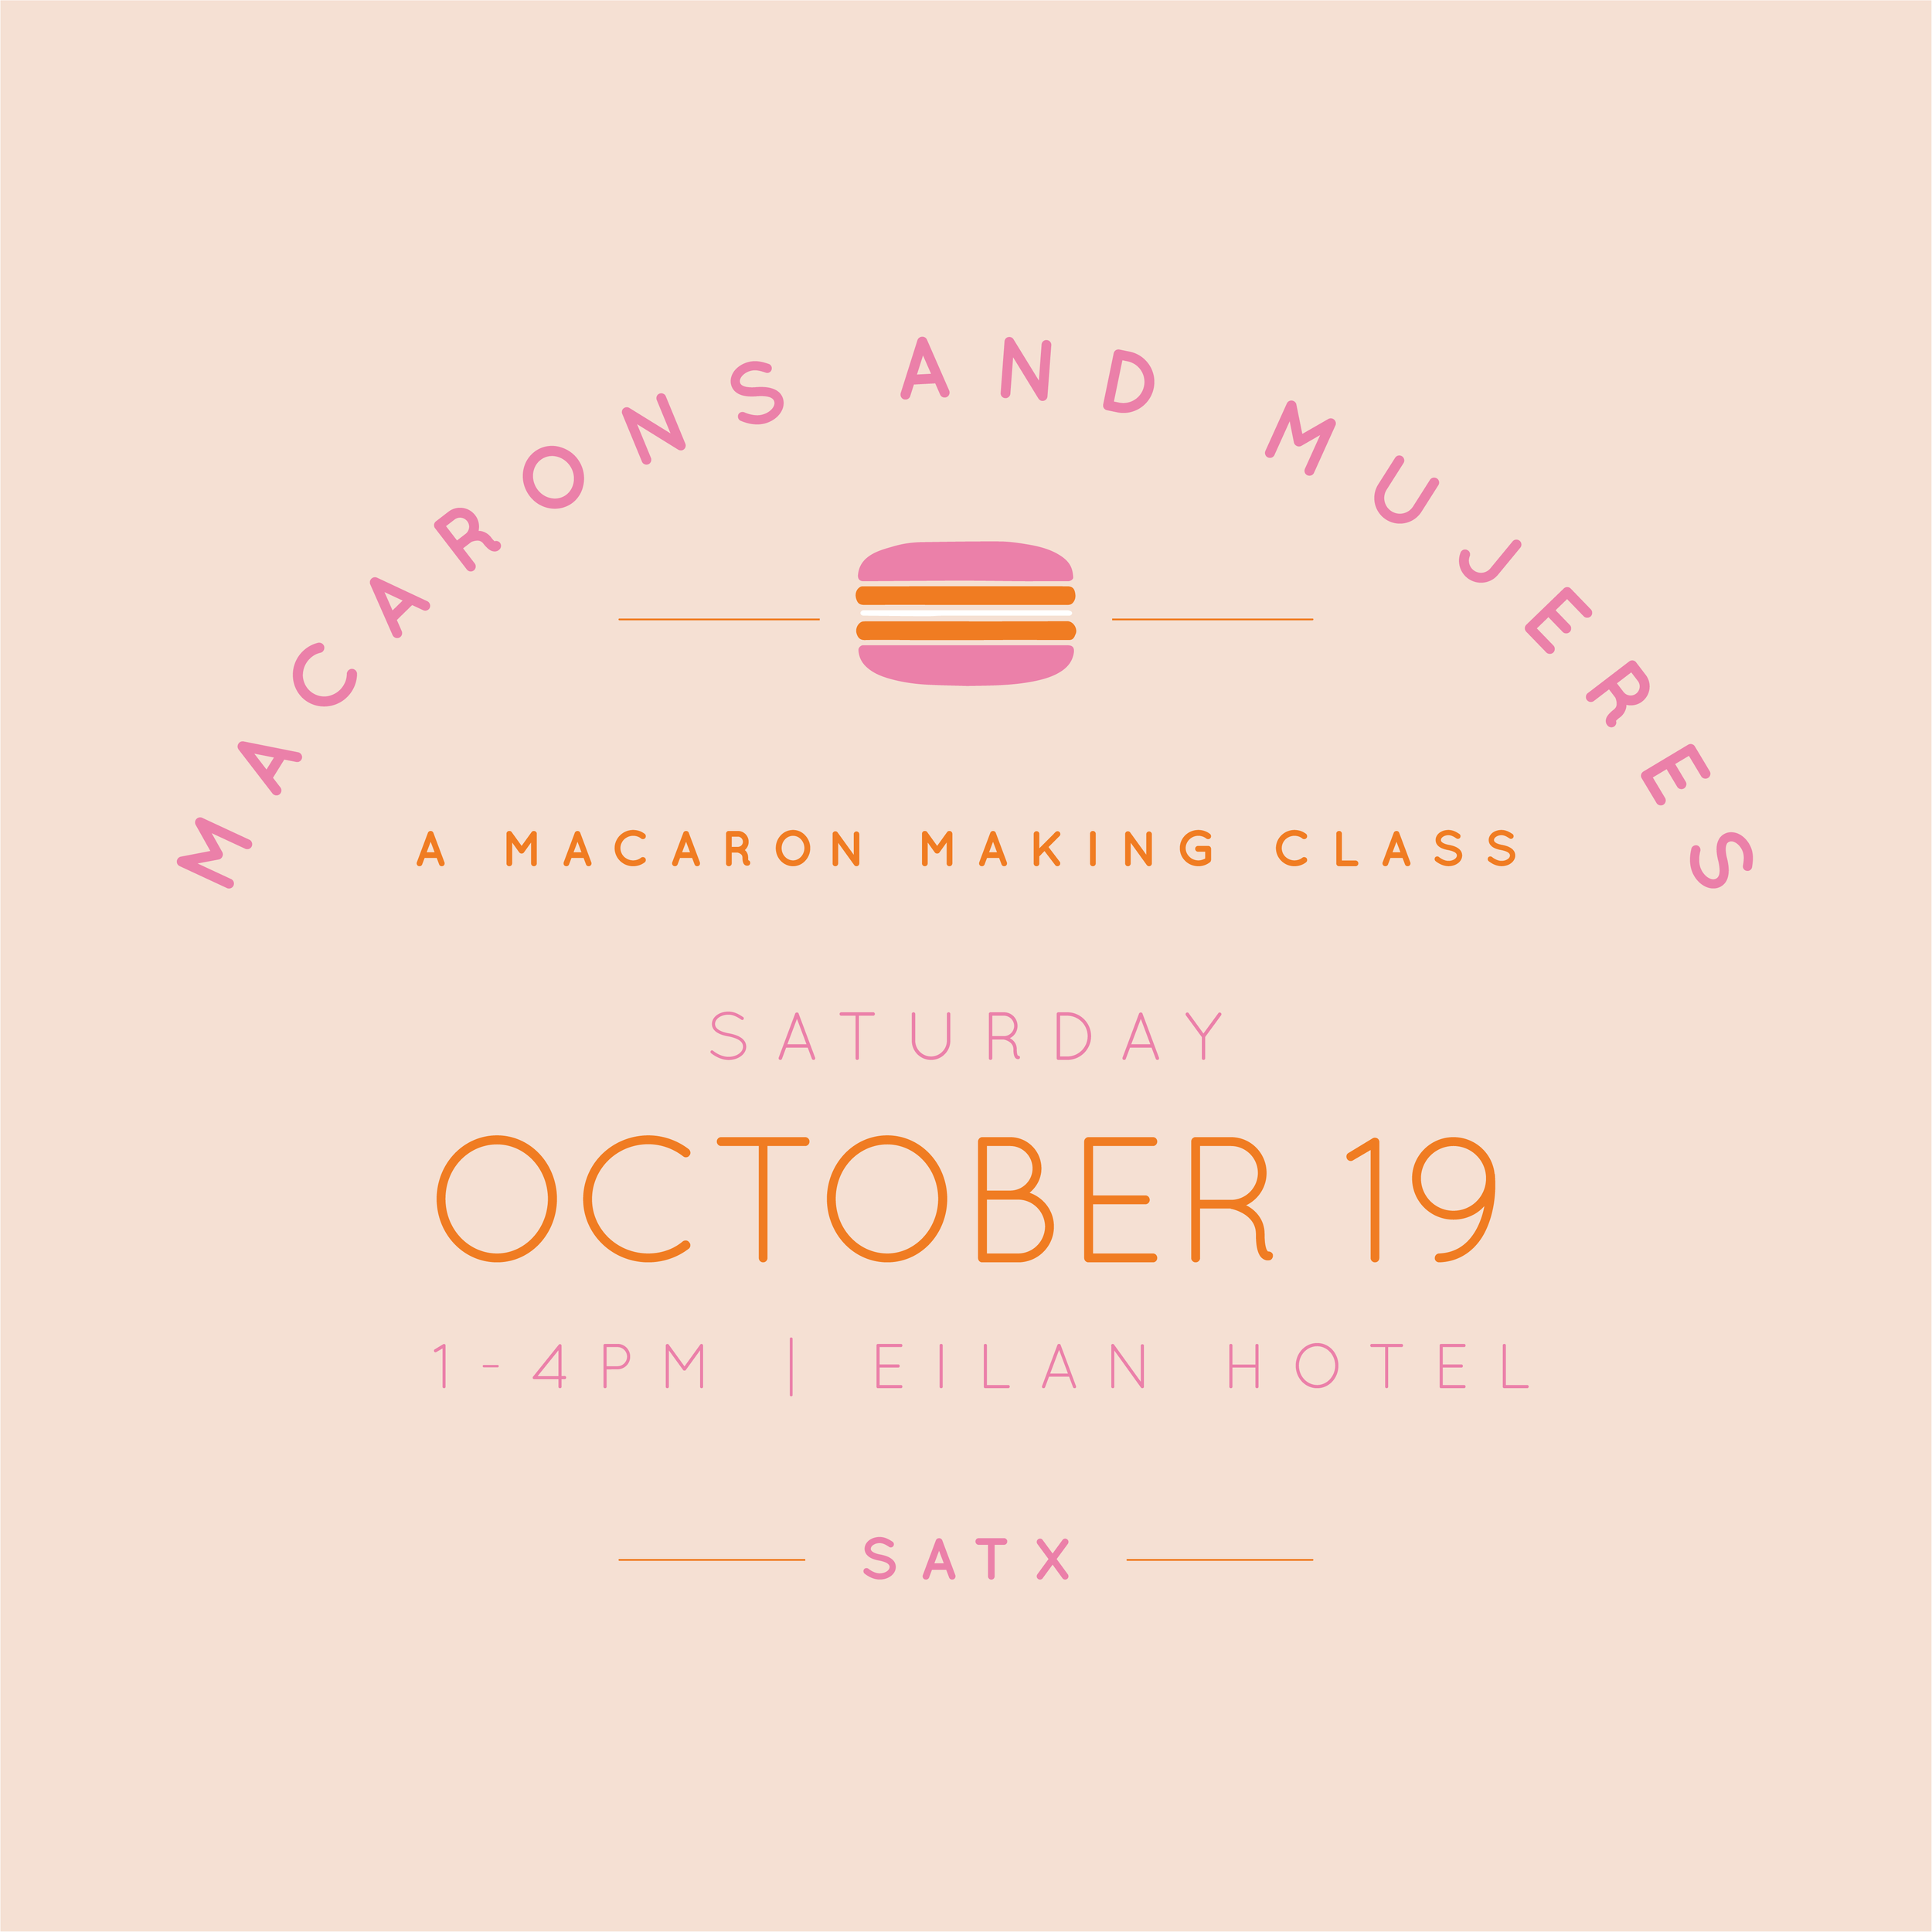 FF_101919_Macaroons&Mujers_instagram-Details.png